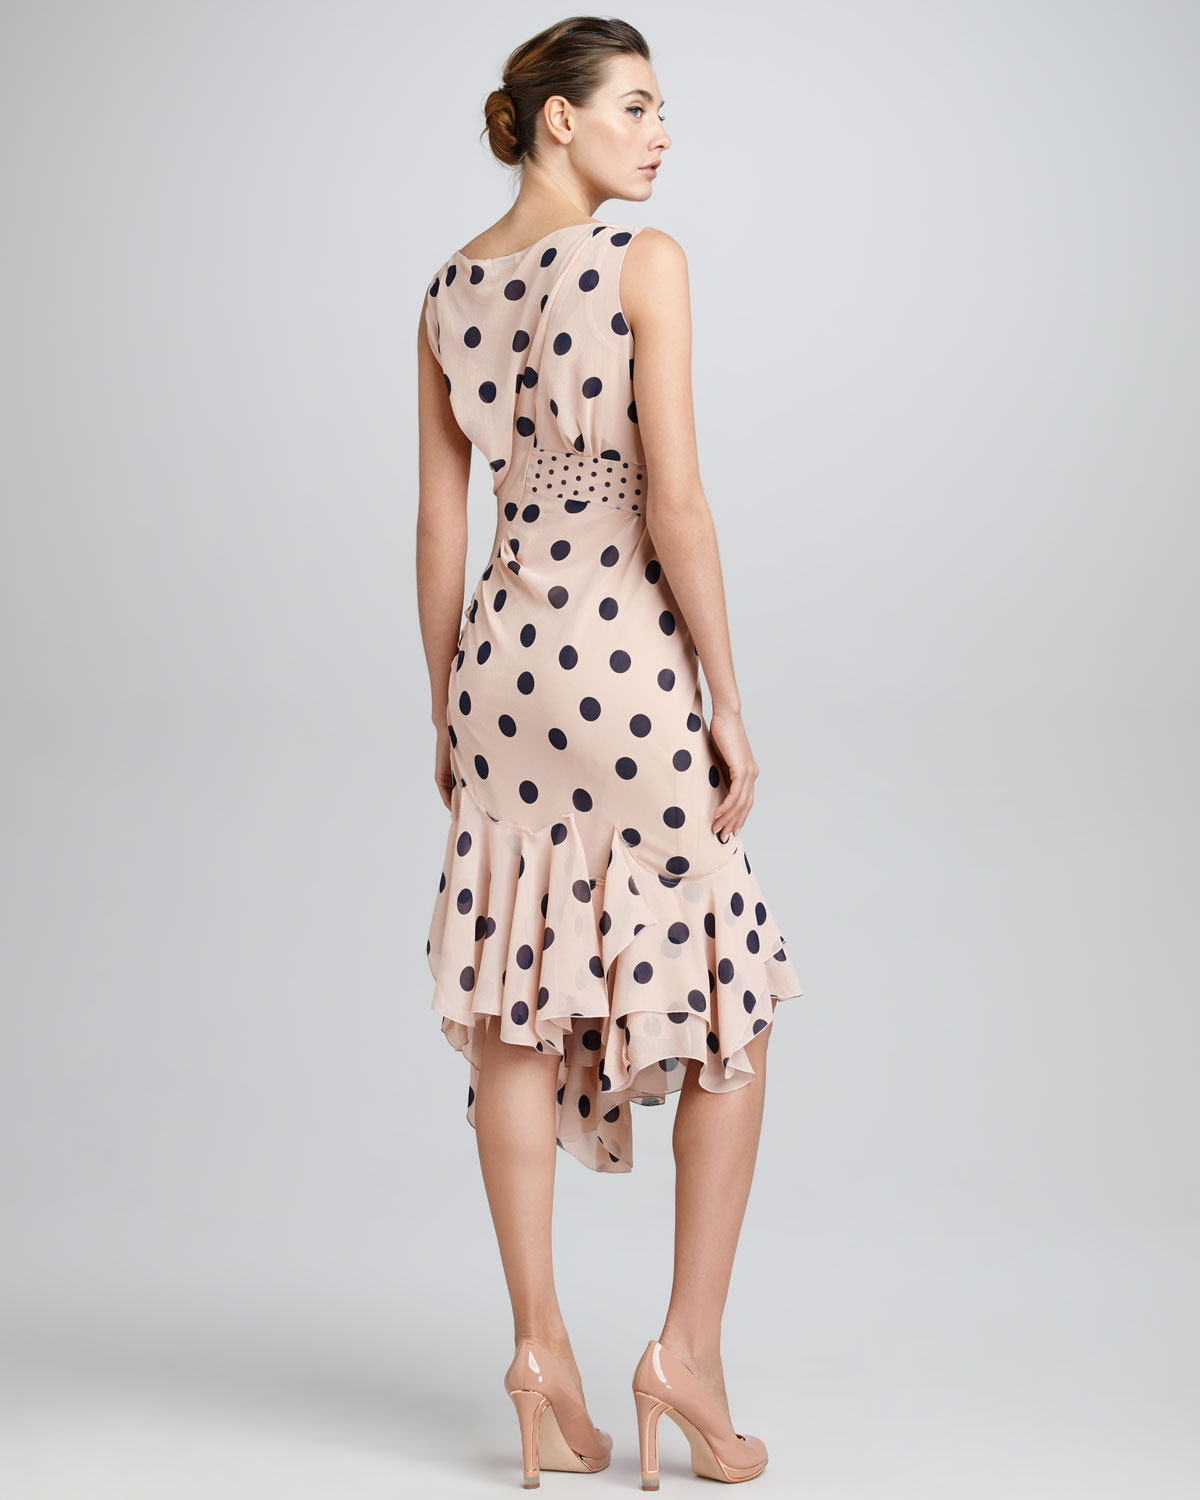 c07c8bd02b Gallery. Previously sold at  Neiman Marcus · Women s Polka Dot Dresses ...